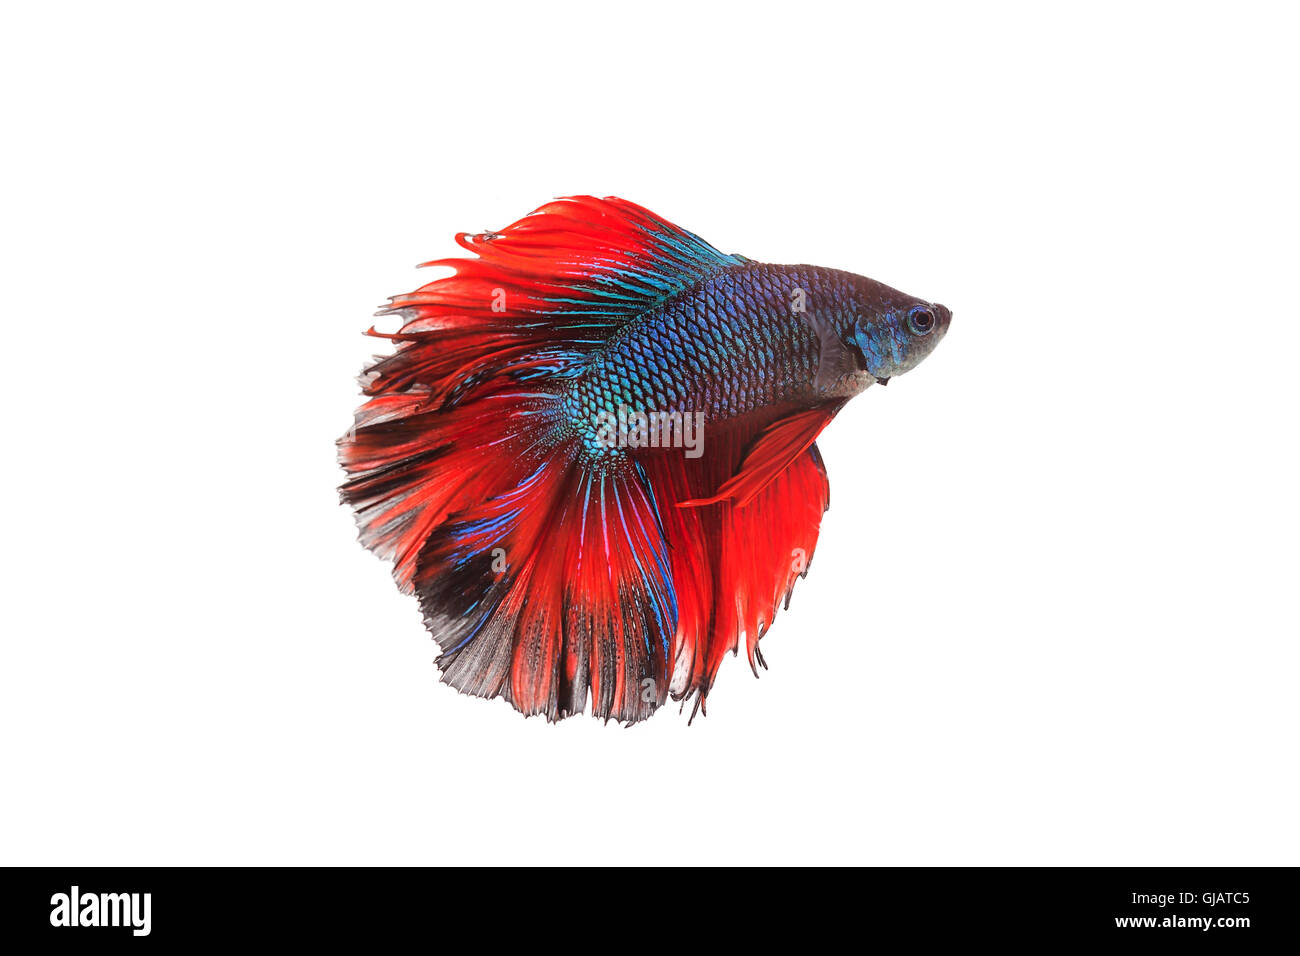 Siamese fighting fish or betta fish isolated on white background. Stock Photo